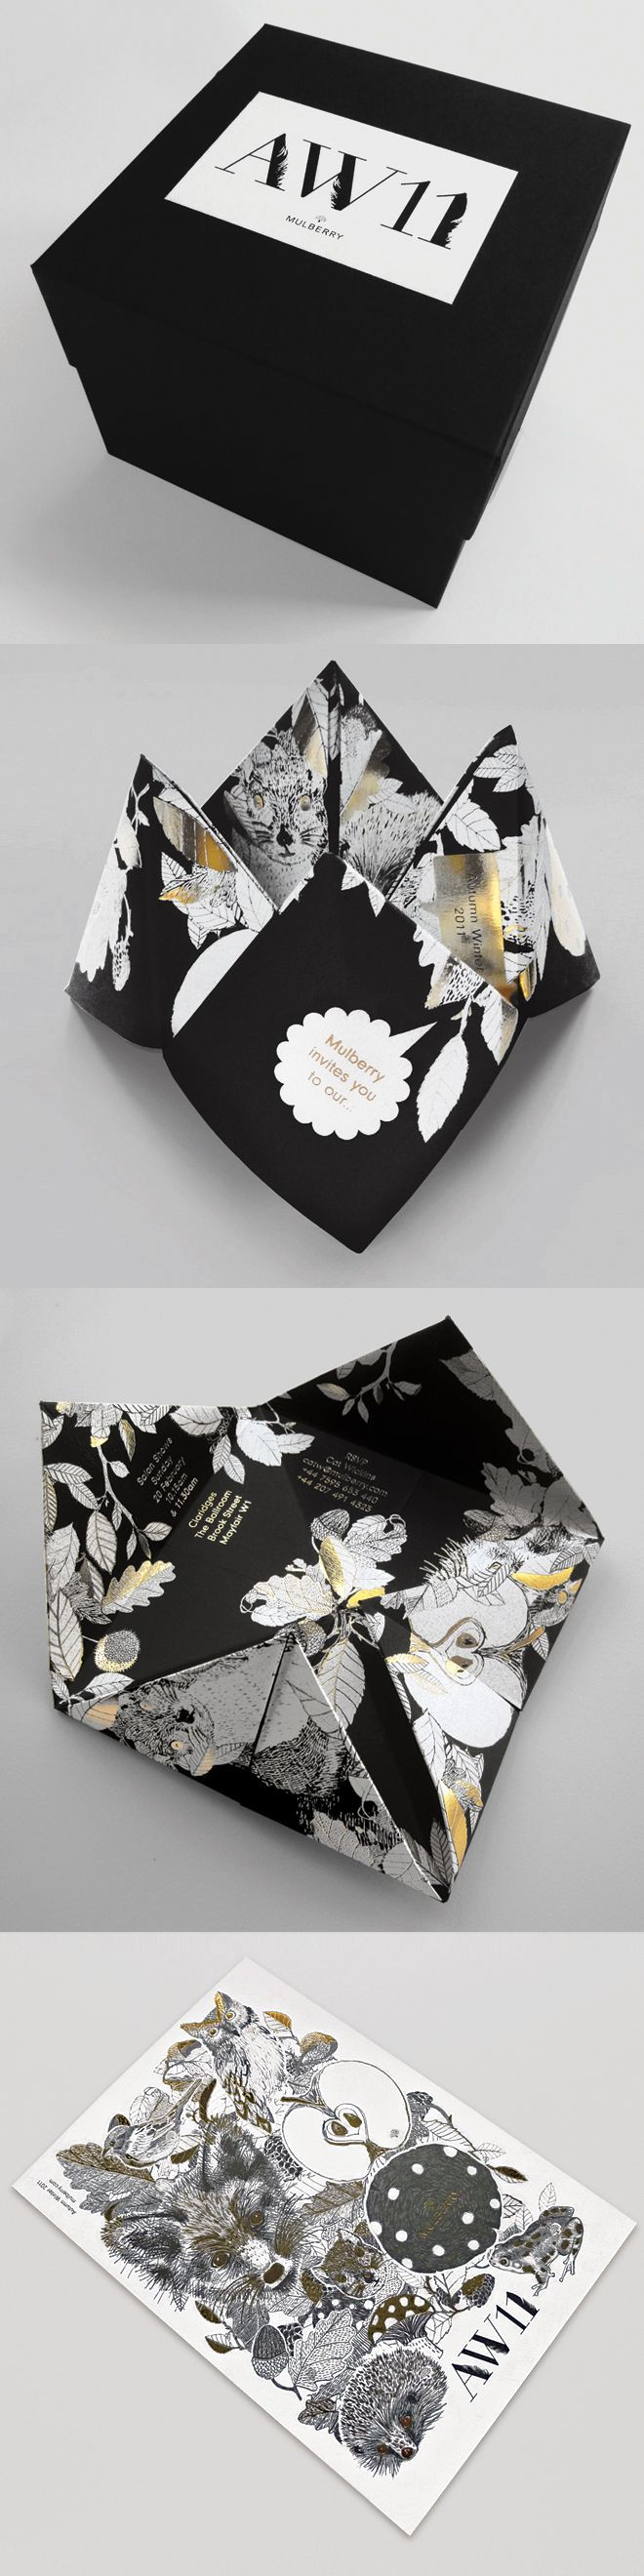 What makes amazing graphic design? These stunning examples showcase gorgeous packaging and gift wrapping. DIY gift wrapping ideas maybe...